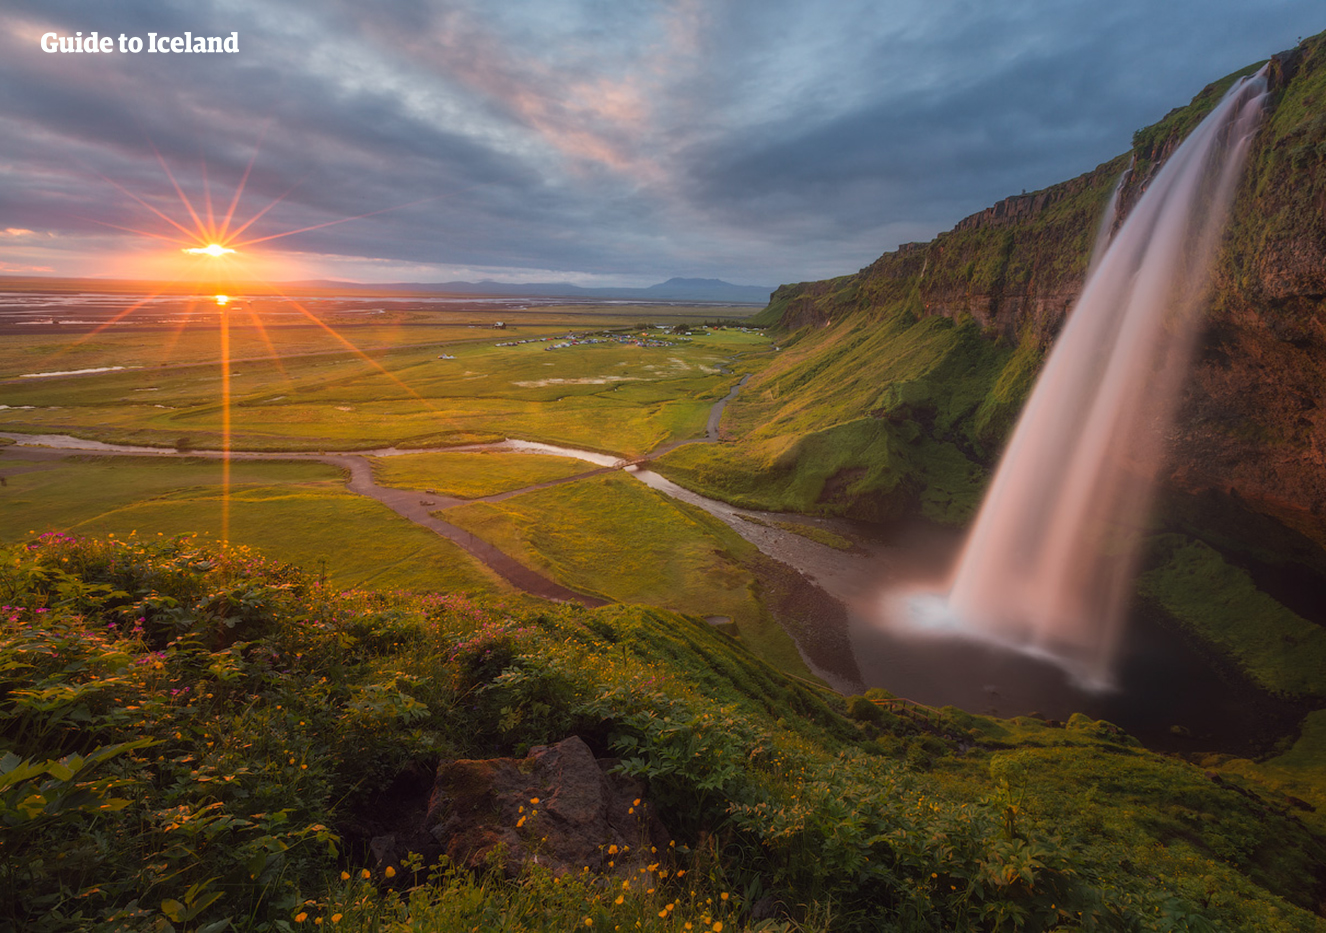 Classic 8 Day Summer Vacation Package Tour of Iceland's South Coast, Westfjords & Highlands - day 2